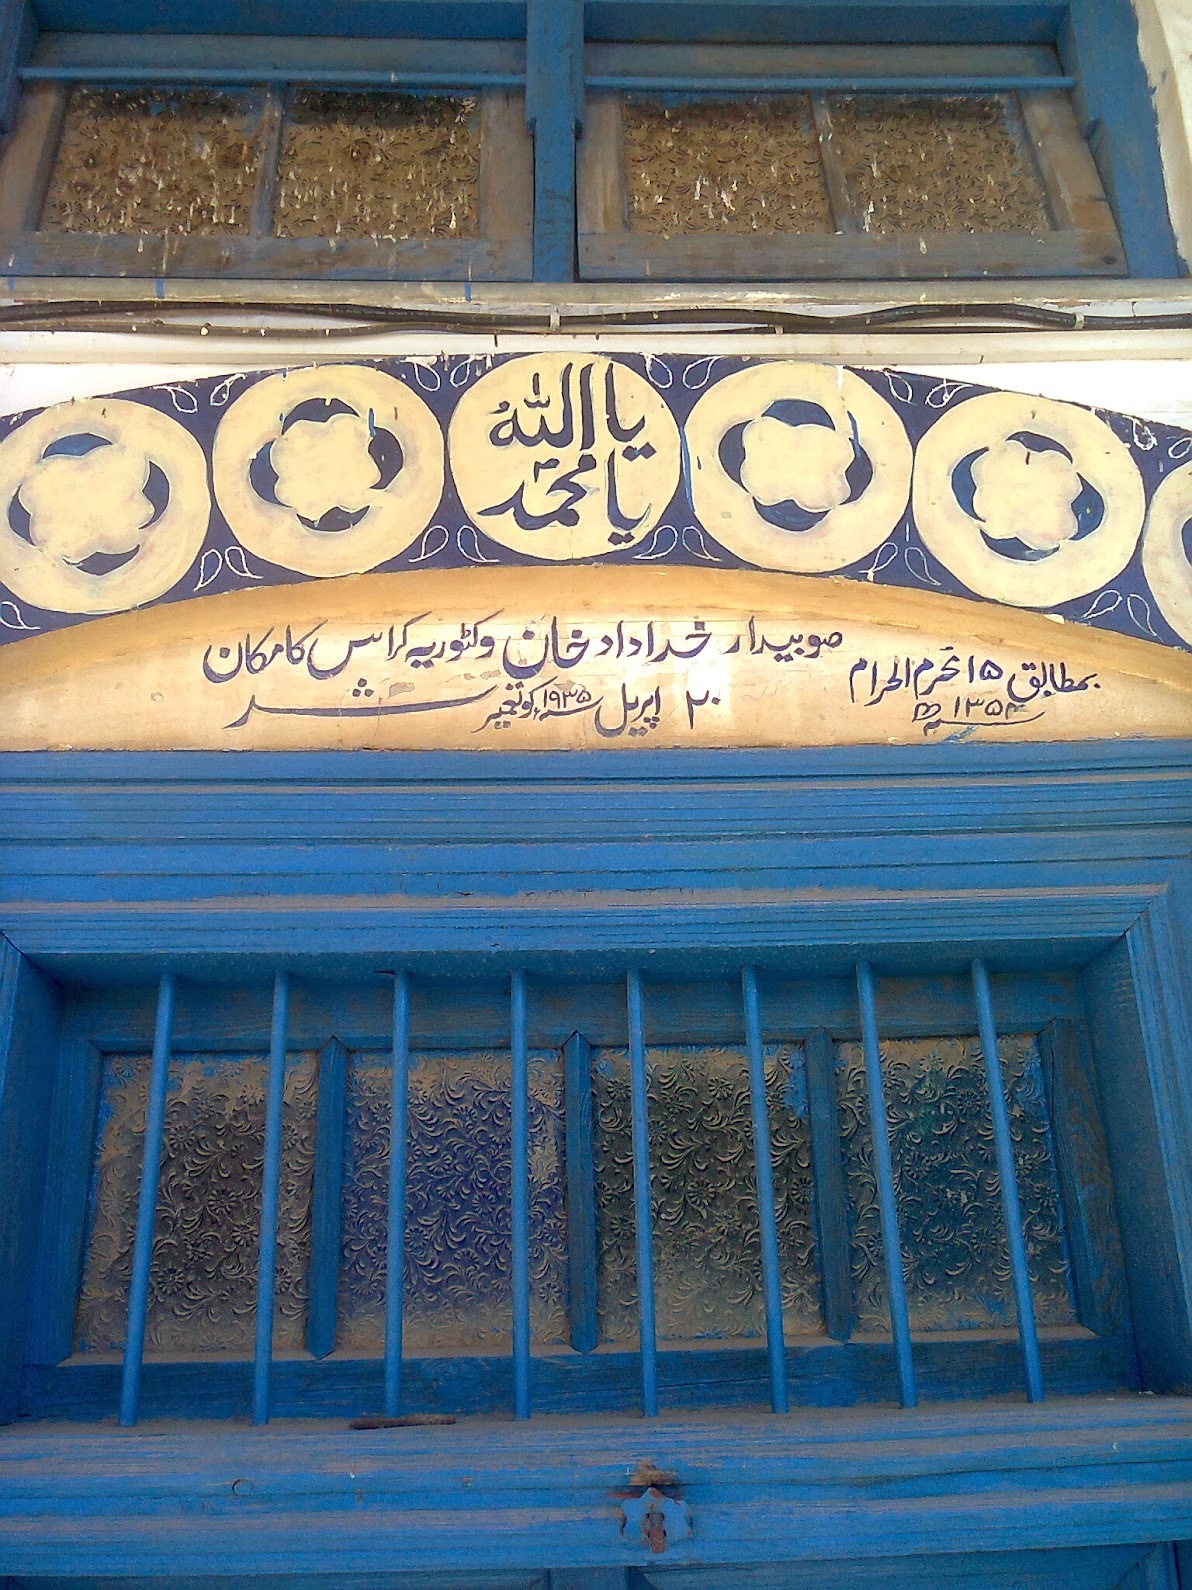 The house built by Khudadad Khan, built in 1935